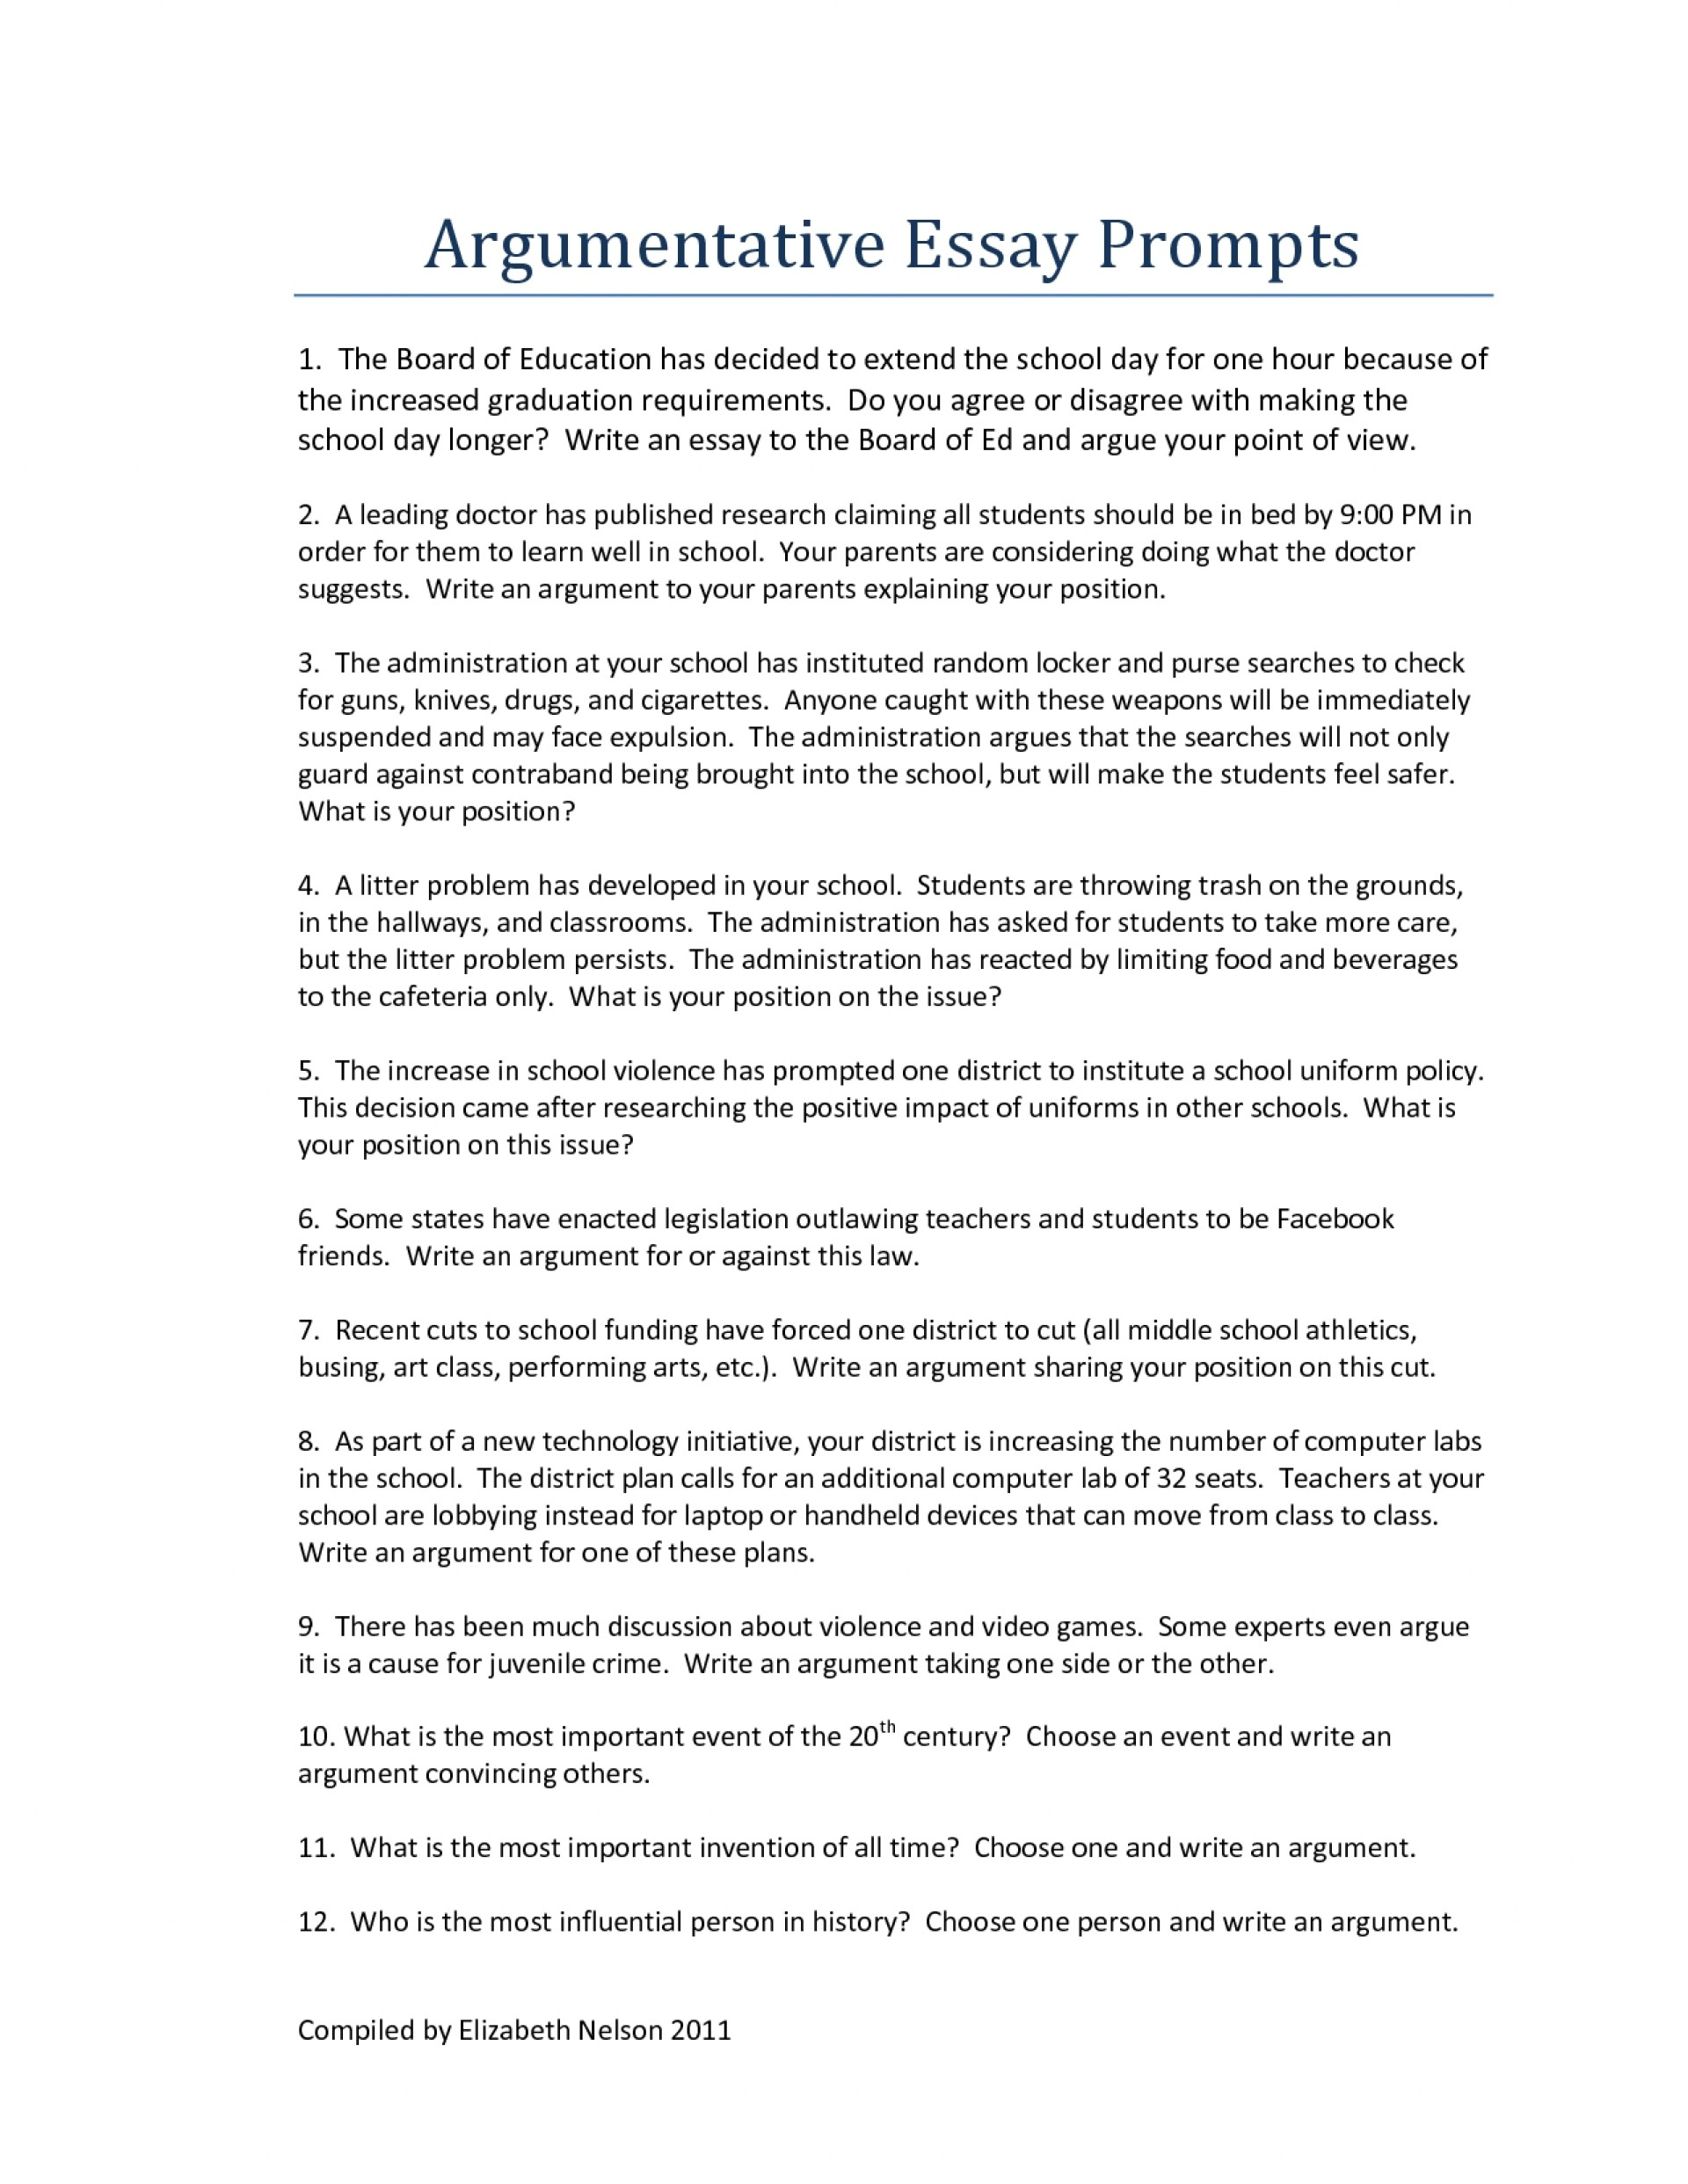 012 Good Persuasive Essay Topics Example Argumentative For Middle School Writings And Essays High Argument Speech About Uniform Education Uniforms Rules Amazing 2018 Uk 1920